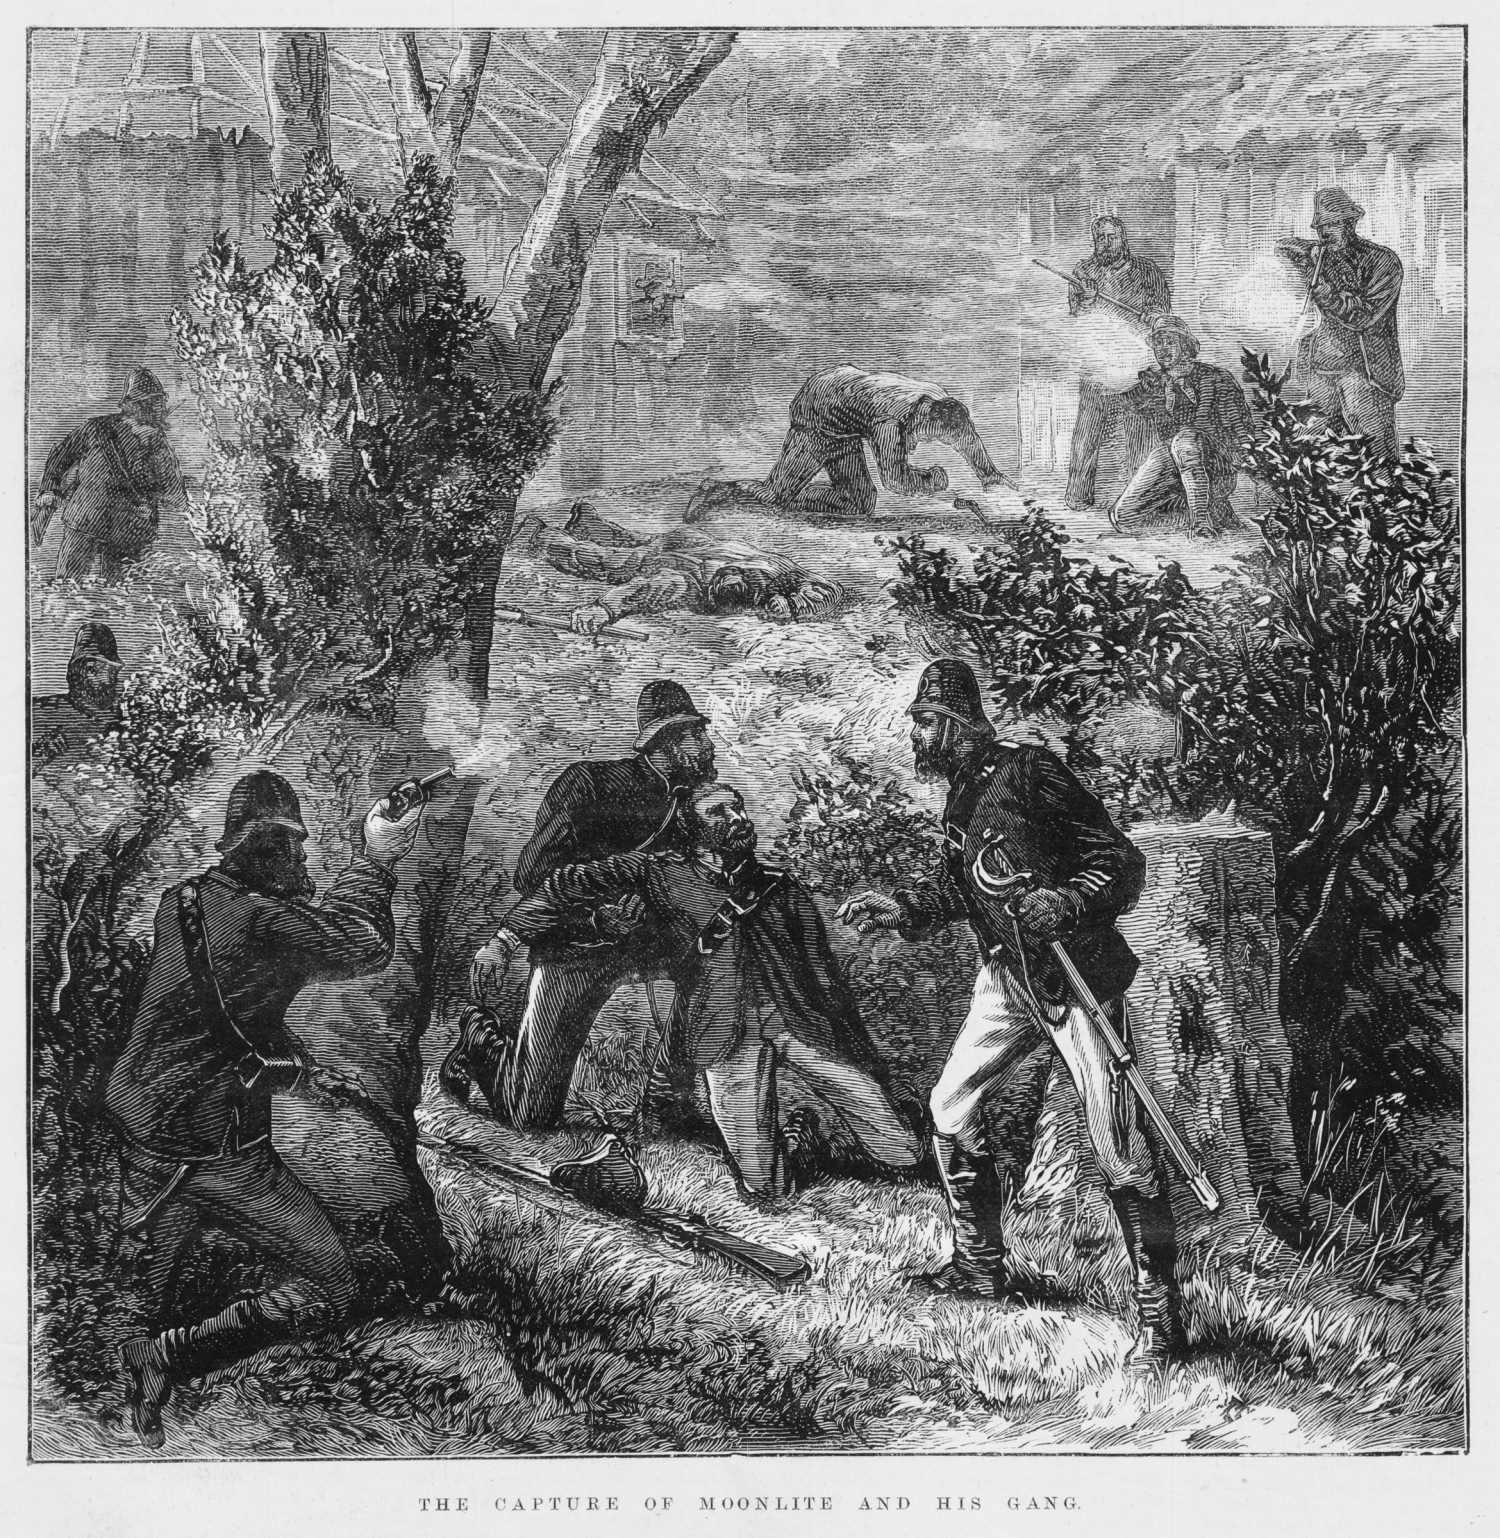 Black and white engraved illustration of shootout between bushrangers and police.